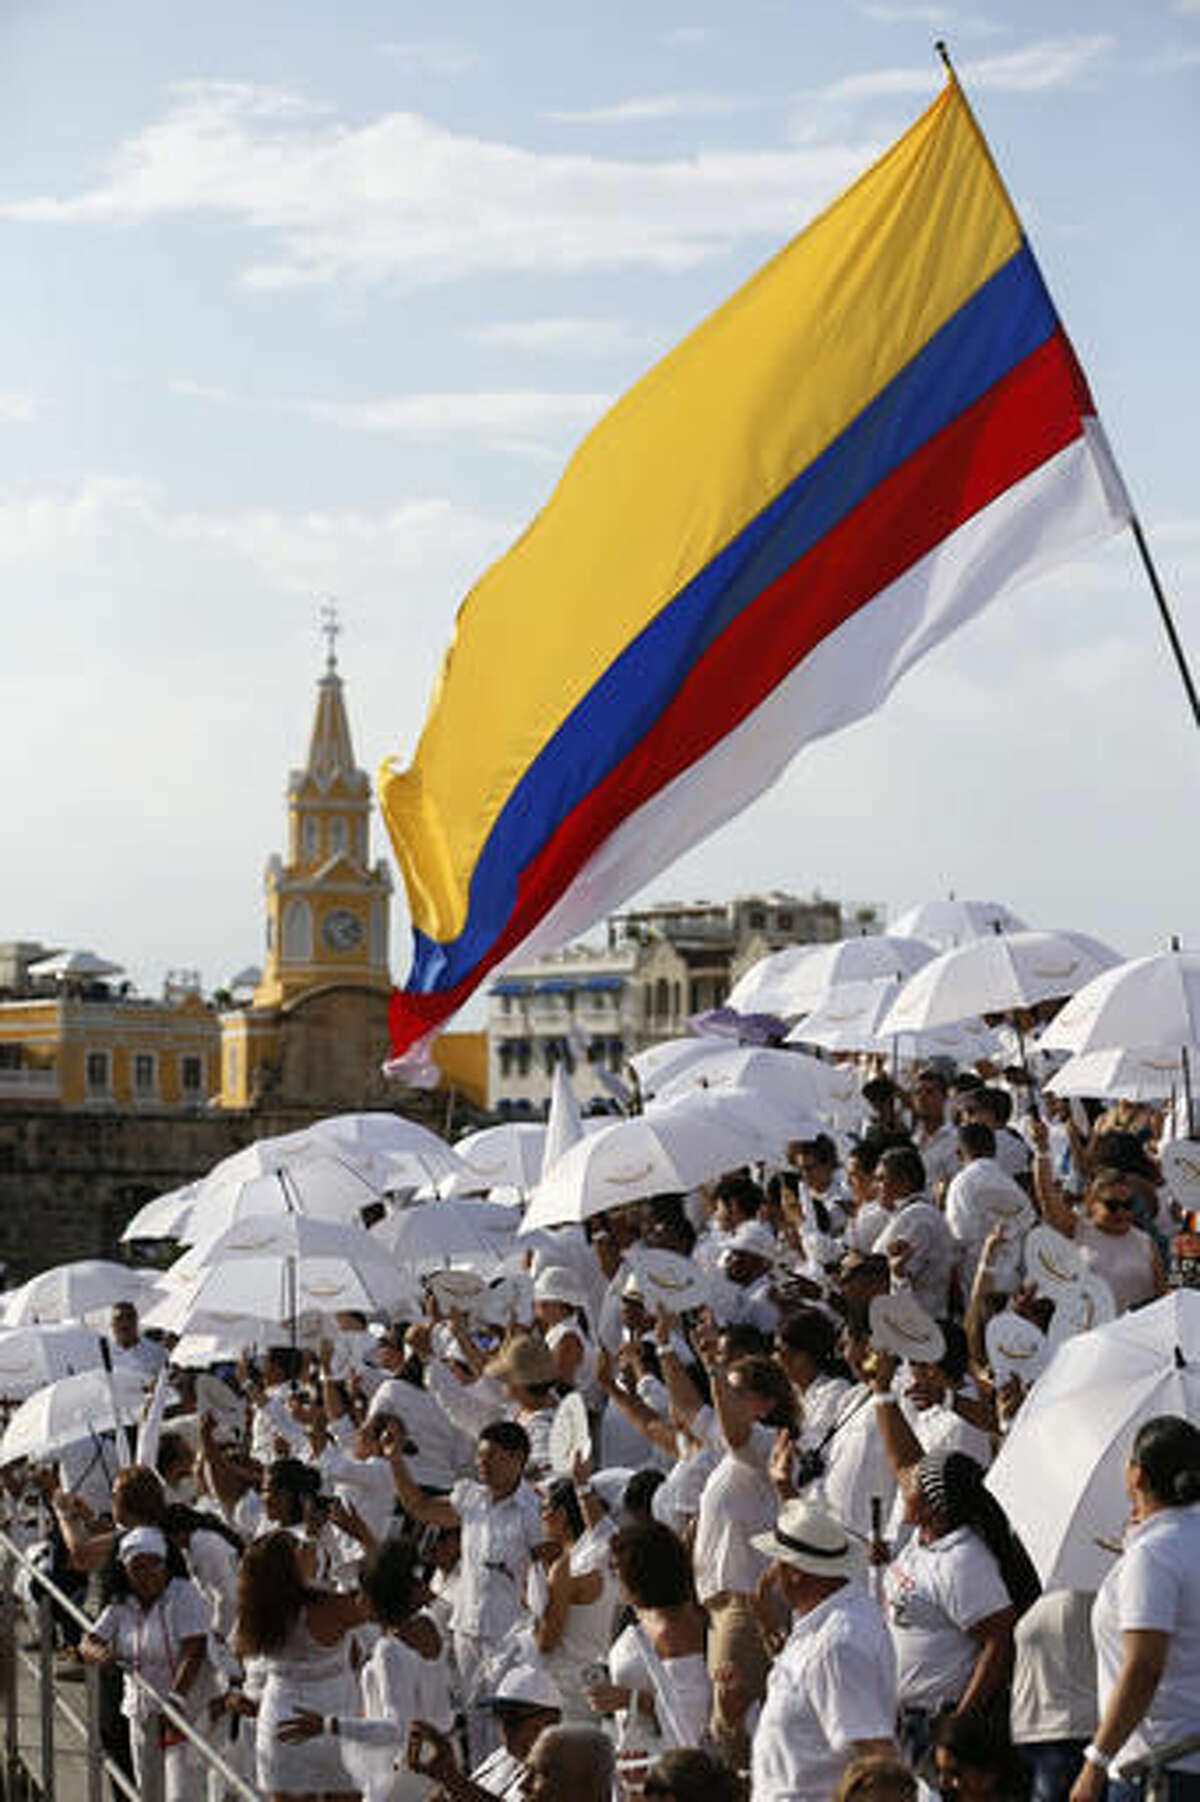 People wait for the start of the peace ceremony prior the signing of the peace agreement between Colombia's government and the Revolutionary Armed Forces of Colombia, FARC, in Cartagena, Colombia, Monday, Sept. 26, 2016. Colombia's government and the FARC will sign a peace agreement to end over 50 years of conflict. (AP Photo/Fernando Vergara)